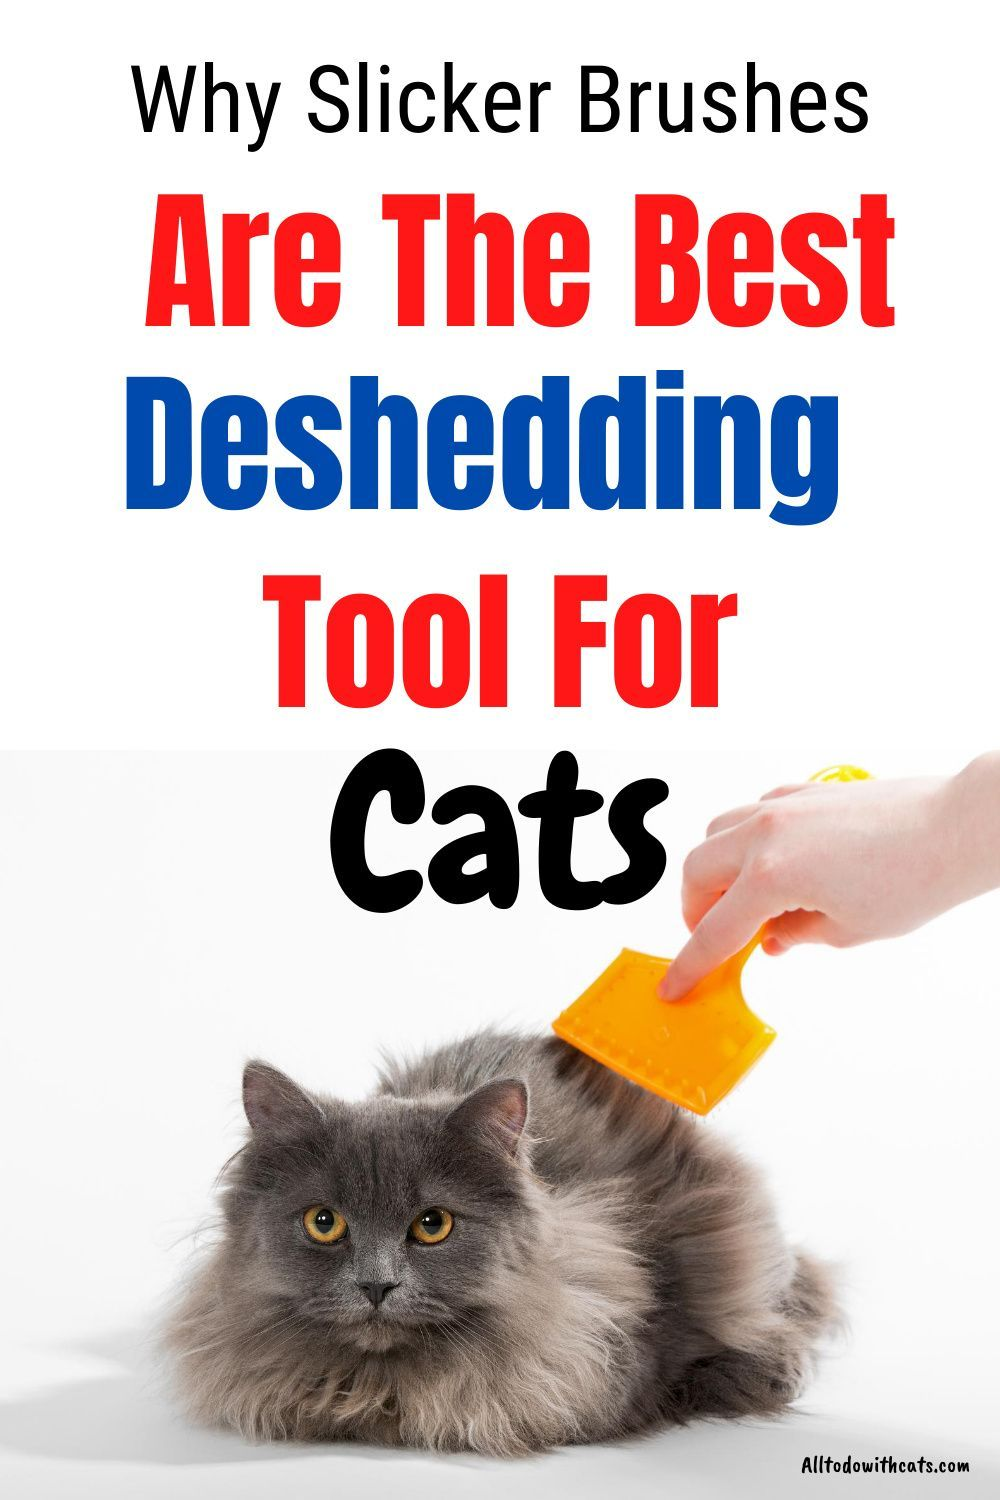 b67a73adf7d84eaf7000ba4e0252e0e4 - How To Get Knots Out Of A Long Haired Cat